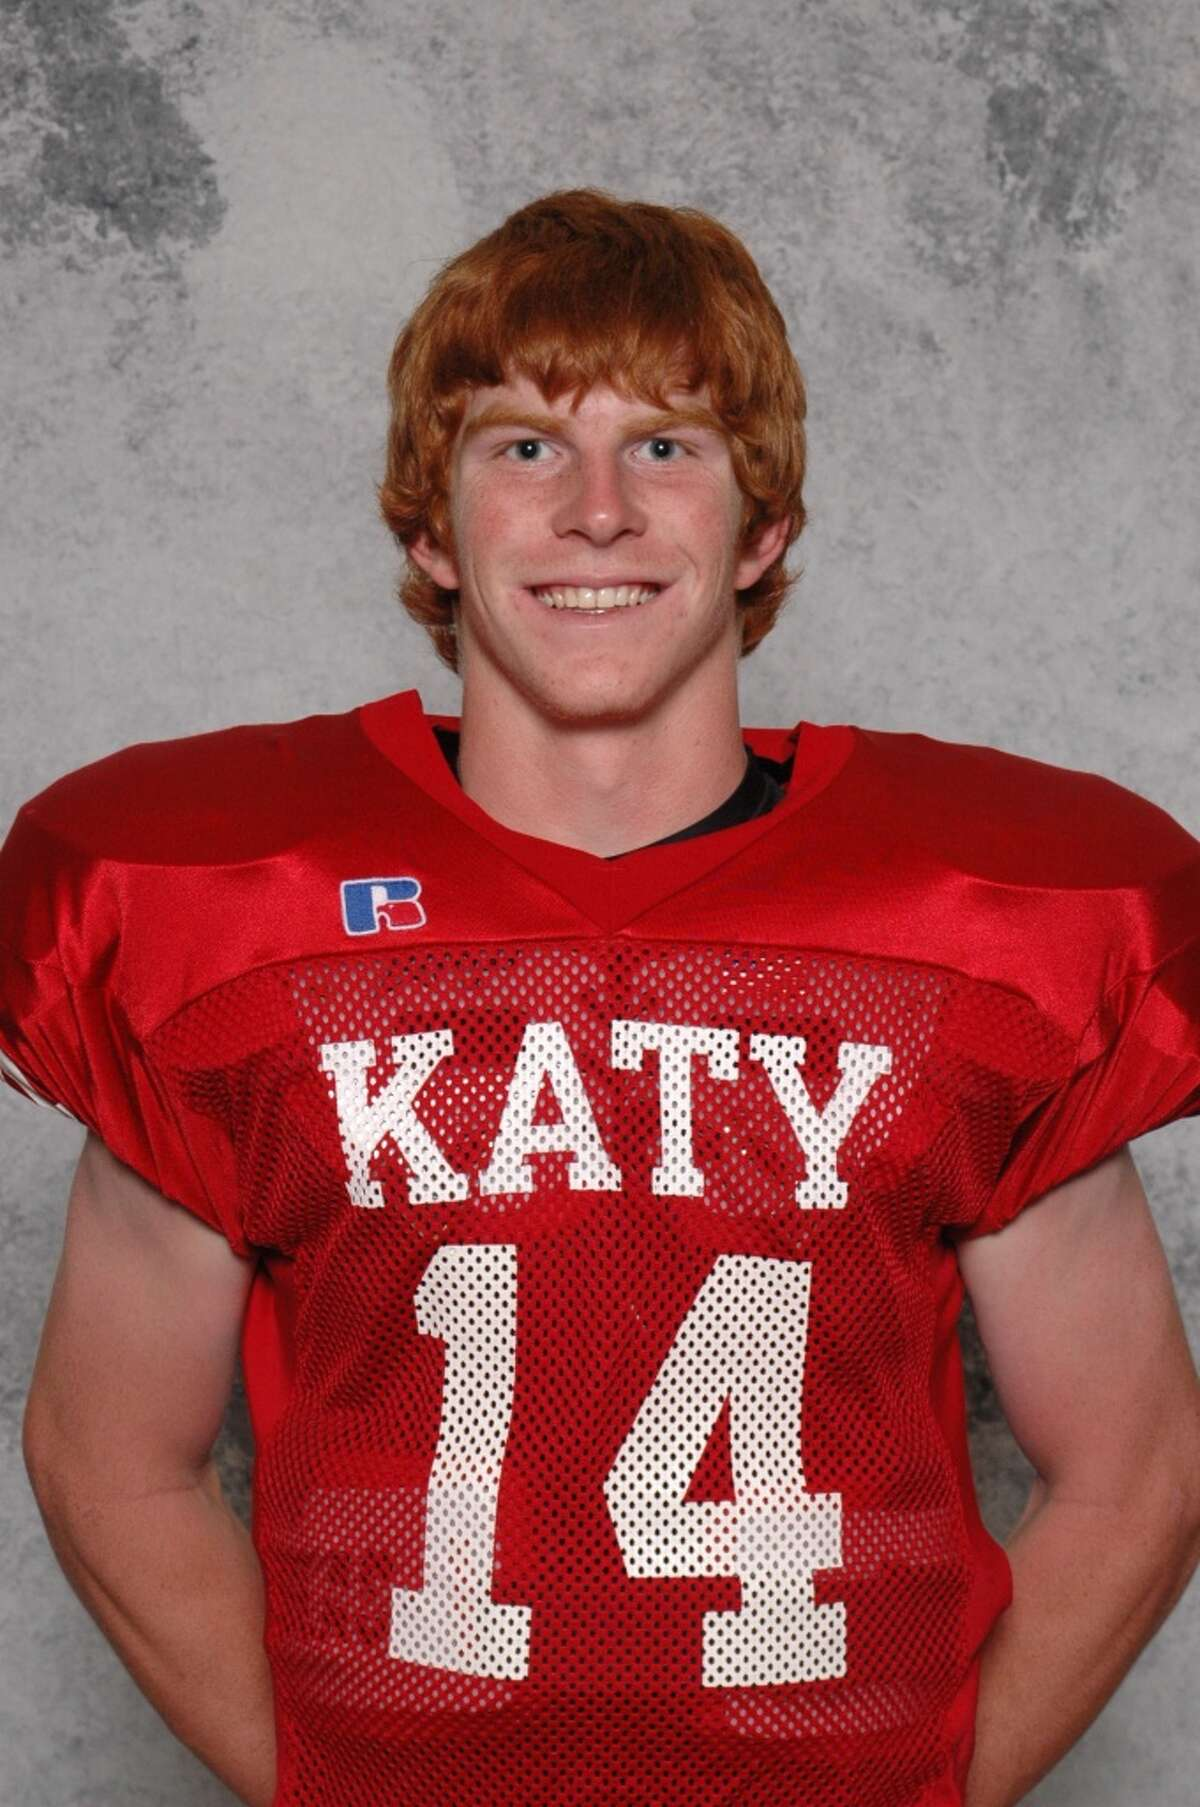 Red Rifle Texas high school football has supplied the NFL with a great deal of its quarterbacks in recent history. Some of course have been more successful than others. DrewBrees, Andy Dalton (above), Andrew Luck, Derek Carr, Nick Foles, Ryan Mallett, Ryan Tannehill, Matthew Stafford, Johnny Manziel and Josh McCown were all high school QBs inTexas.